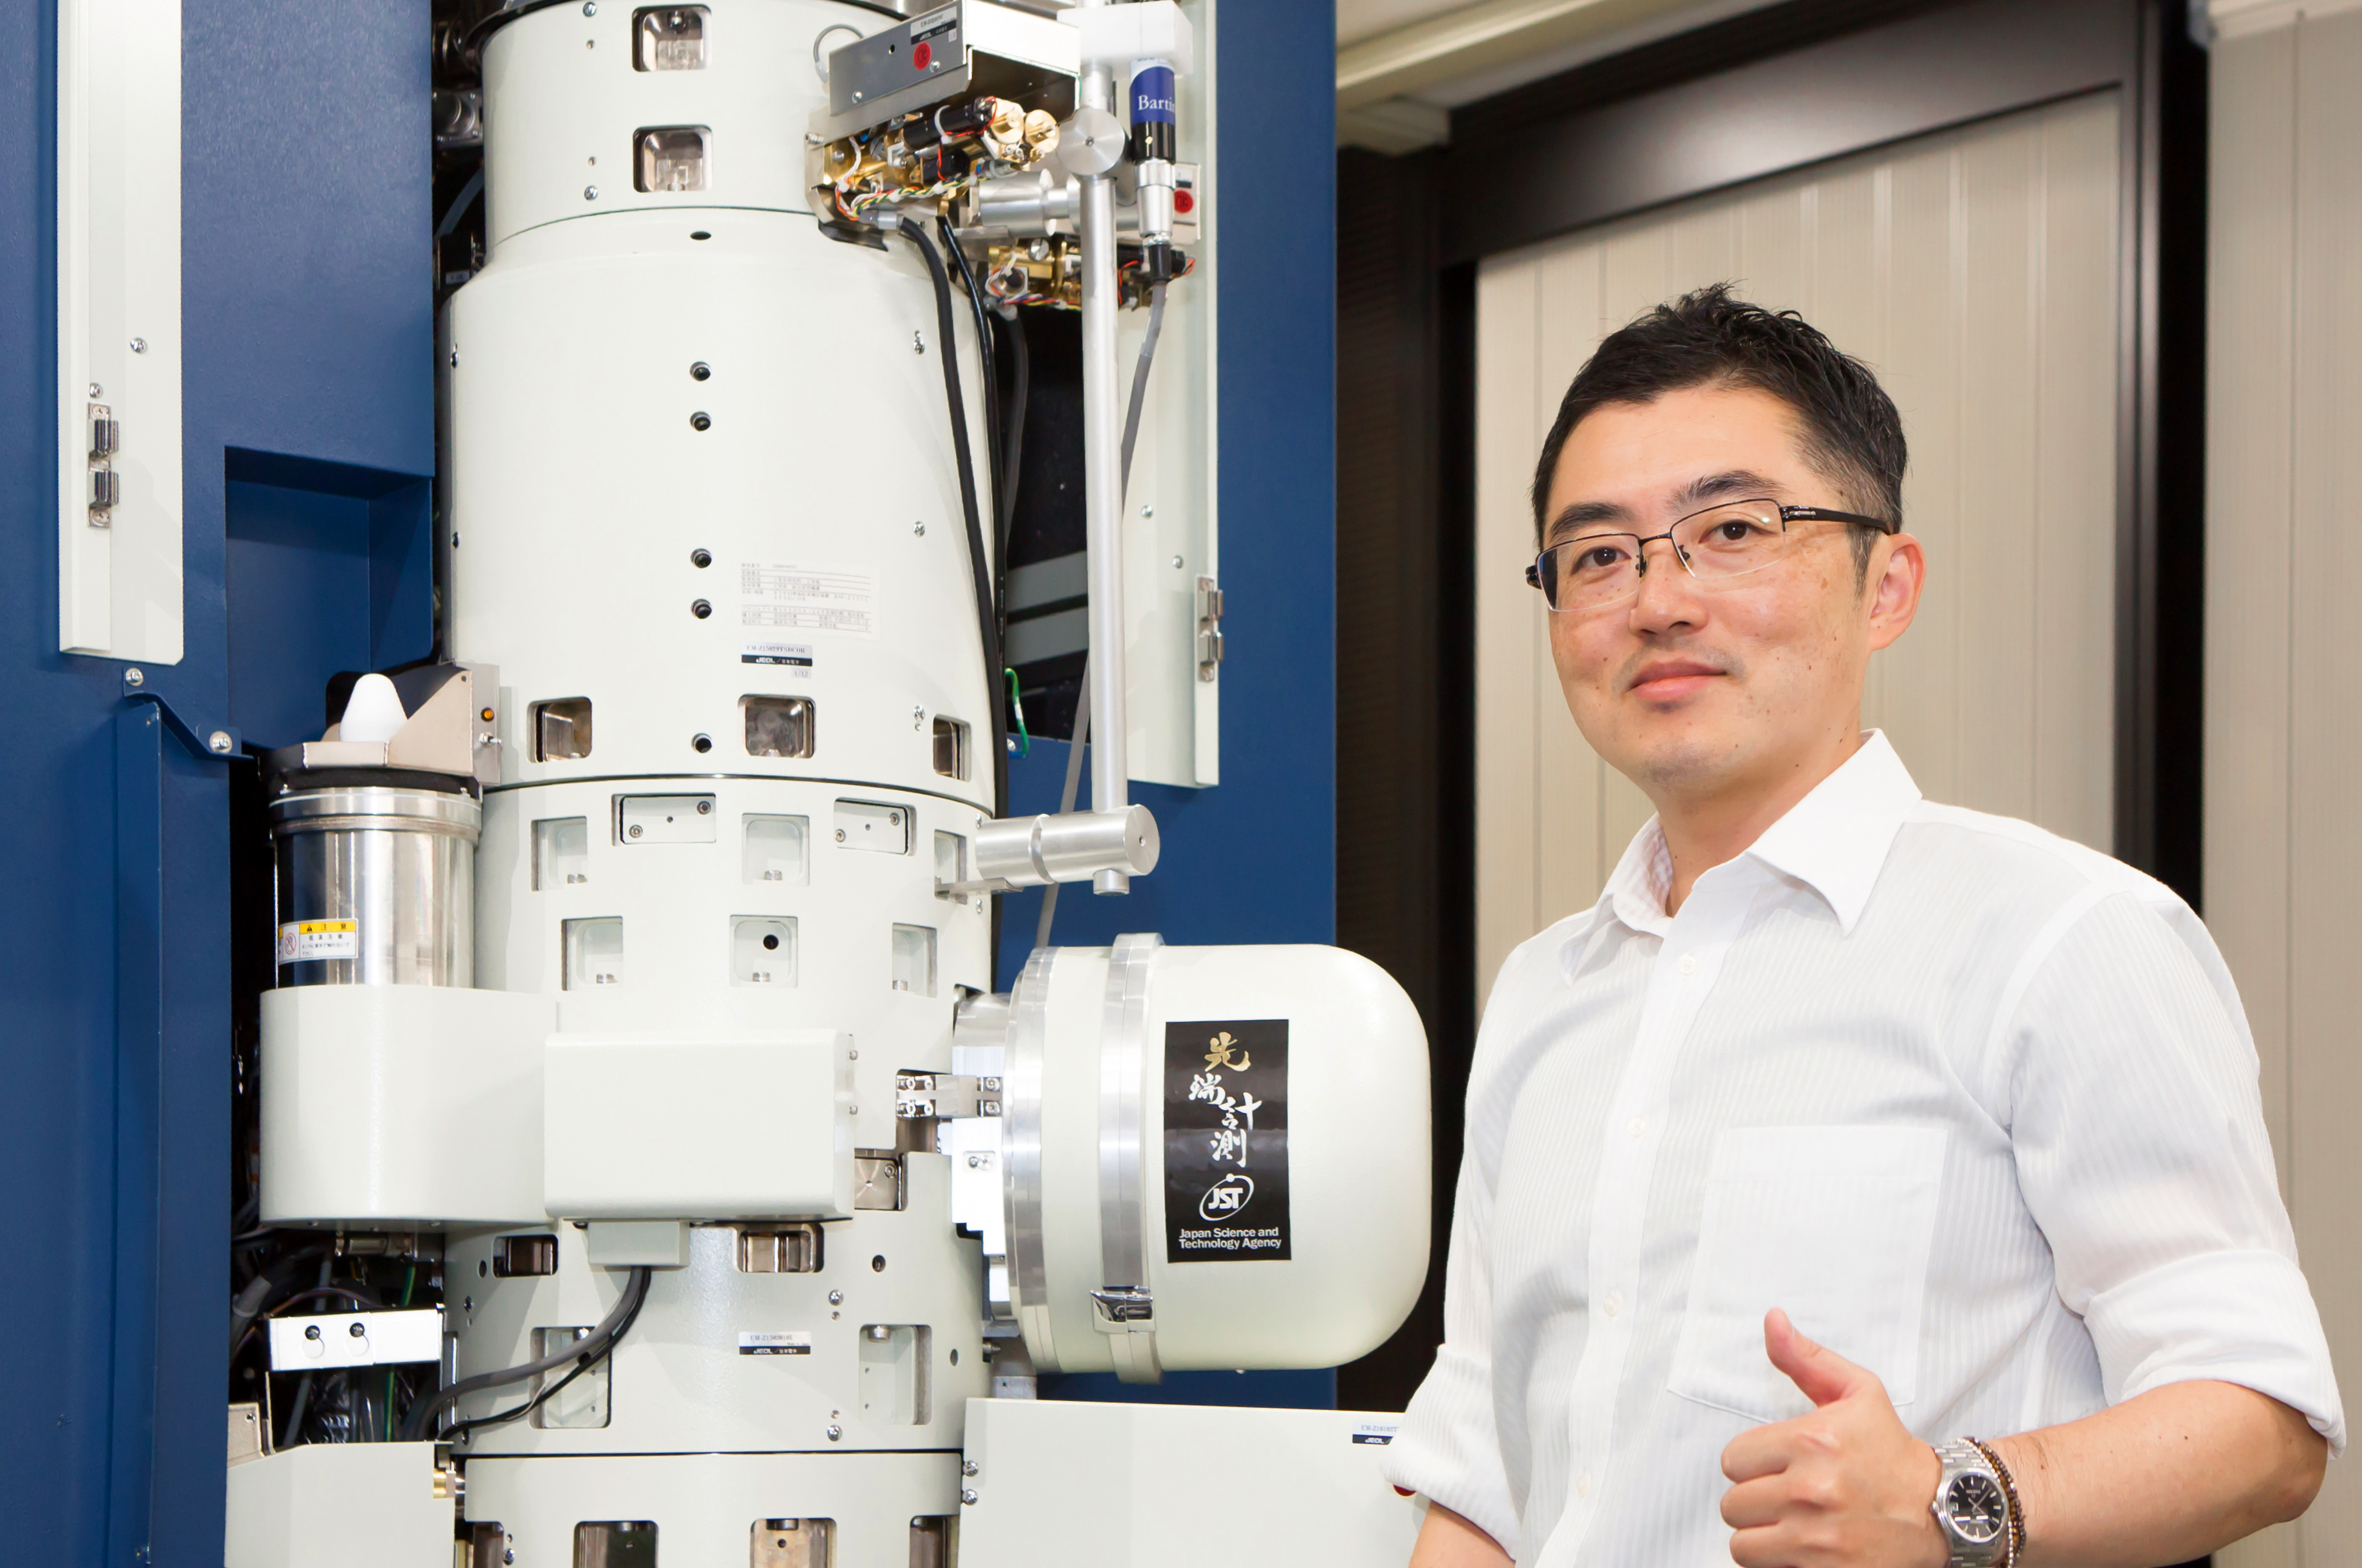 On the left is an electron microscope, a large machine made of white cylinders and covered in electronic components. On the right is a man, Professor Shibata.